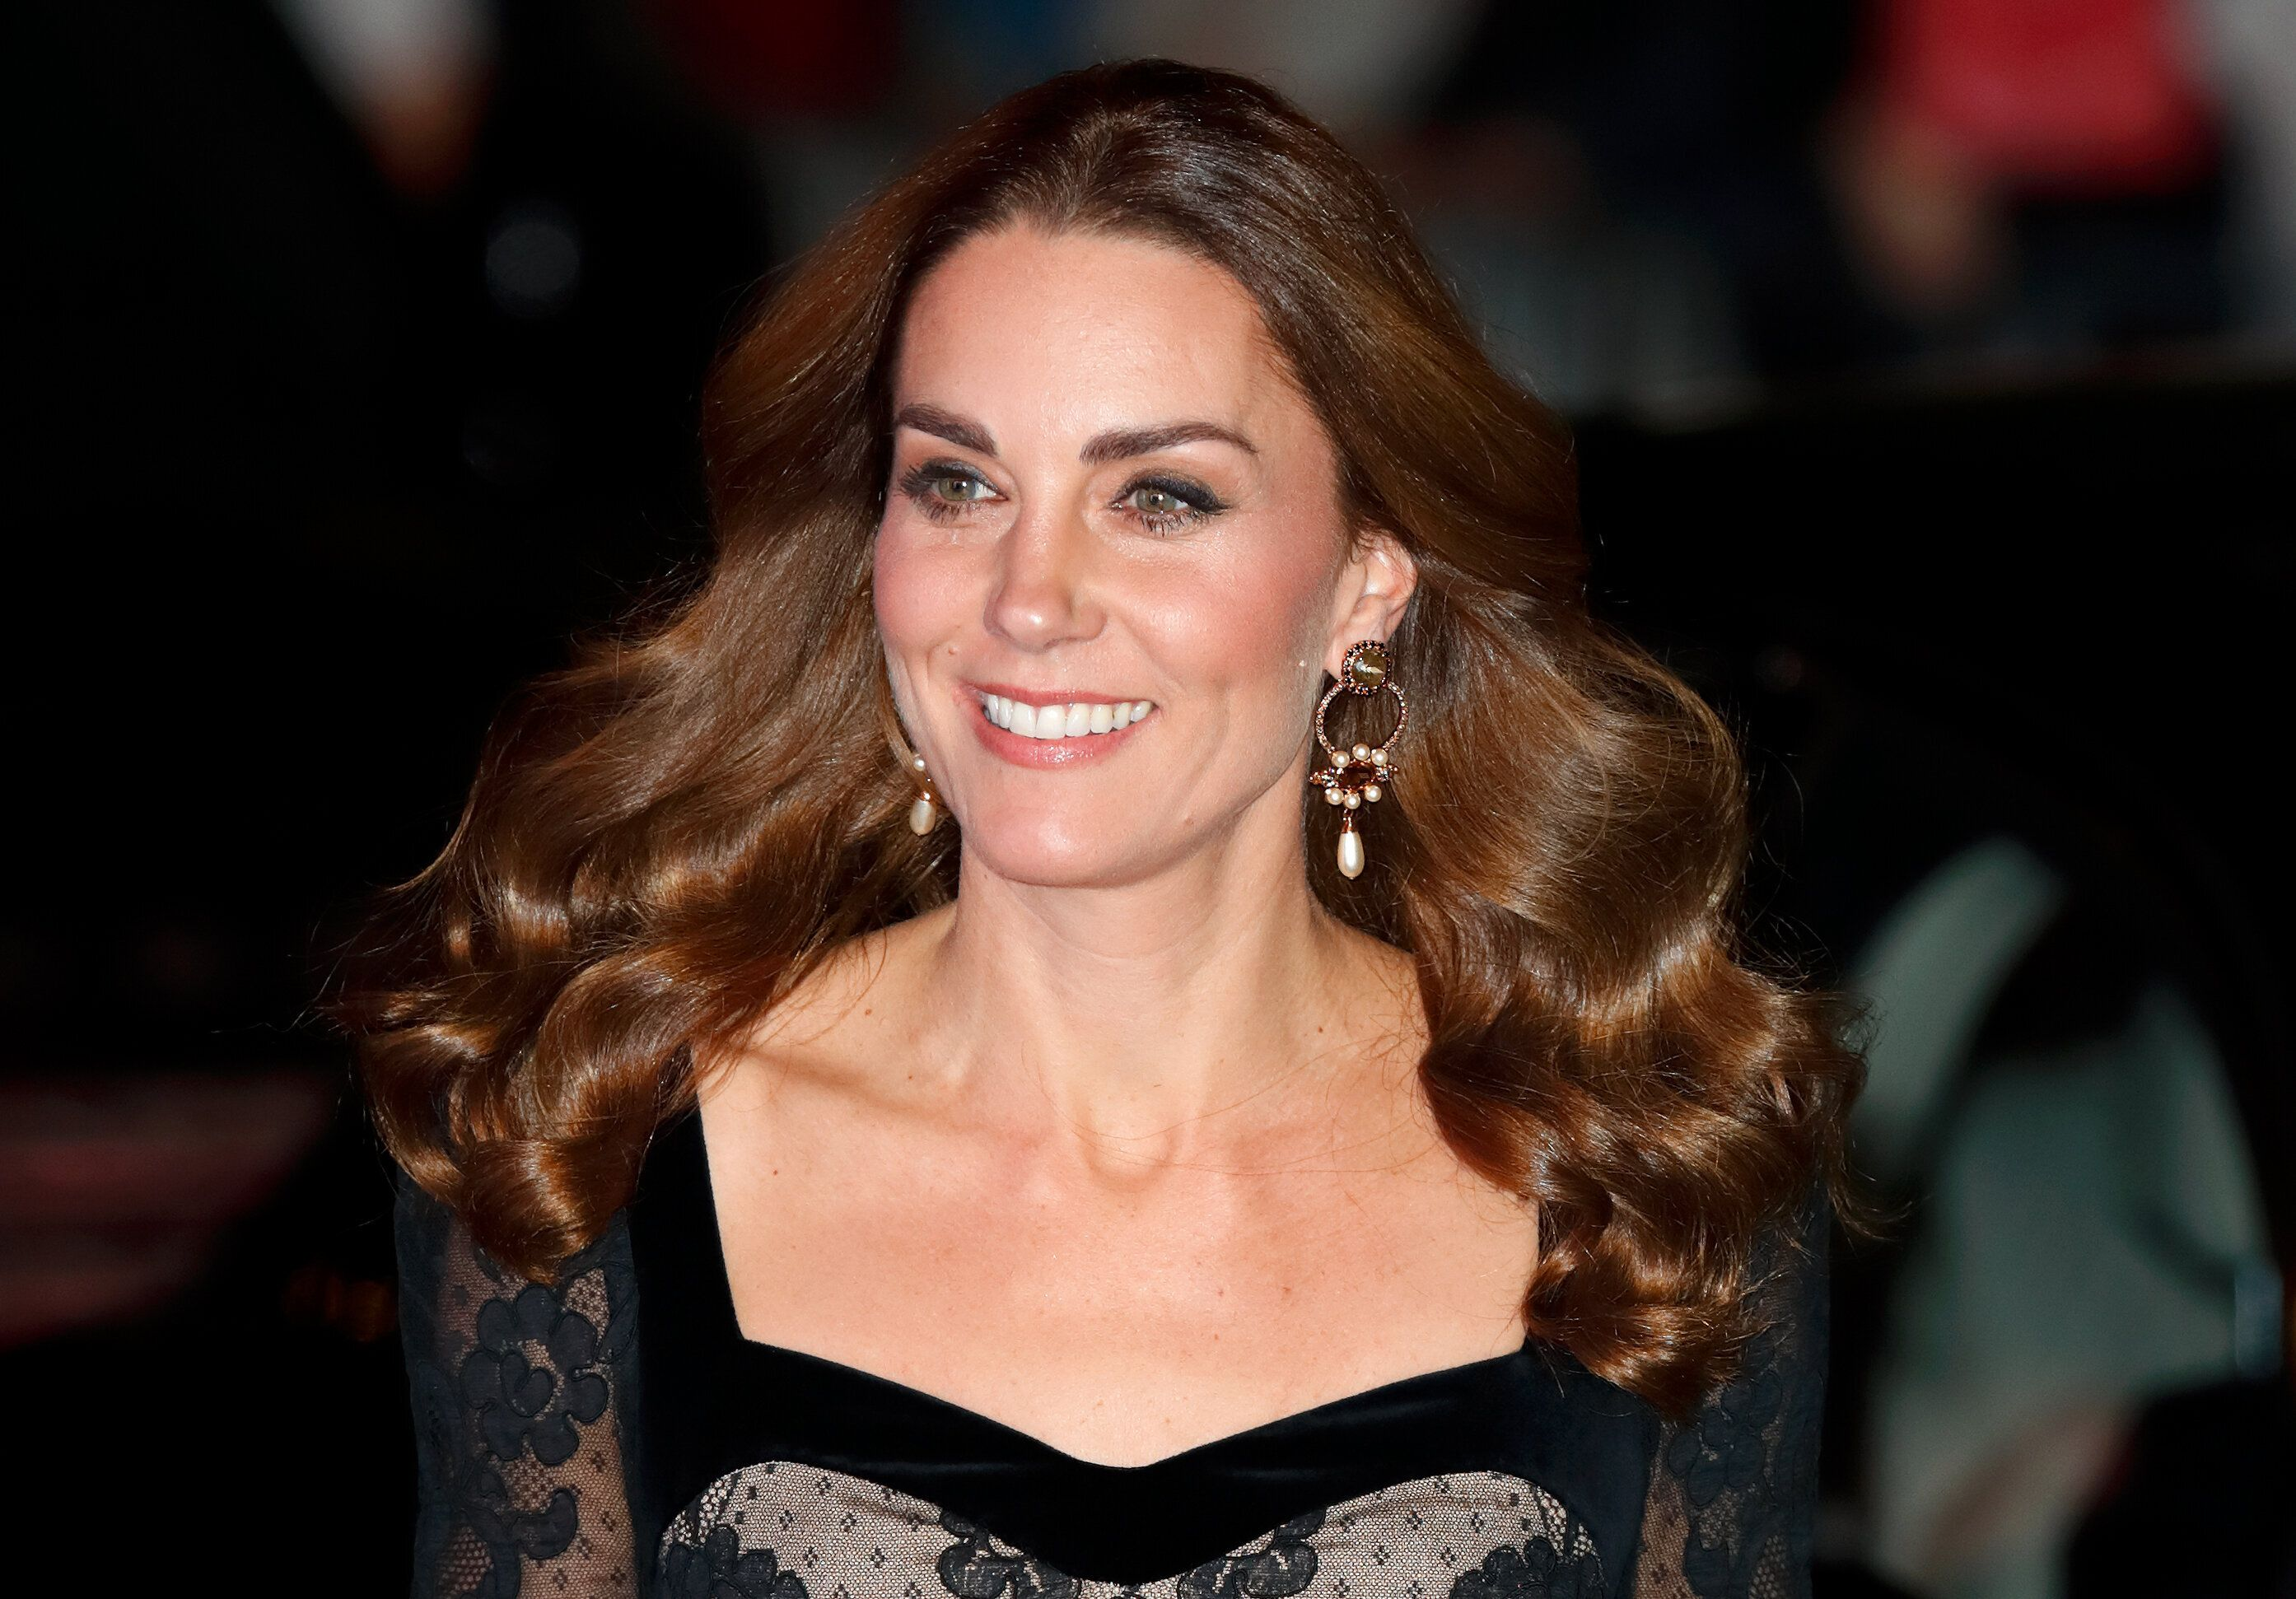 Kate Middleton Just Wore The Sparkliest Heels Ever